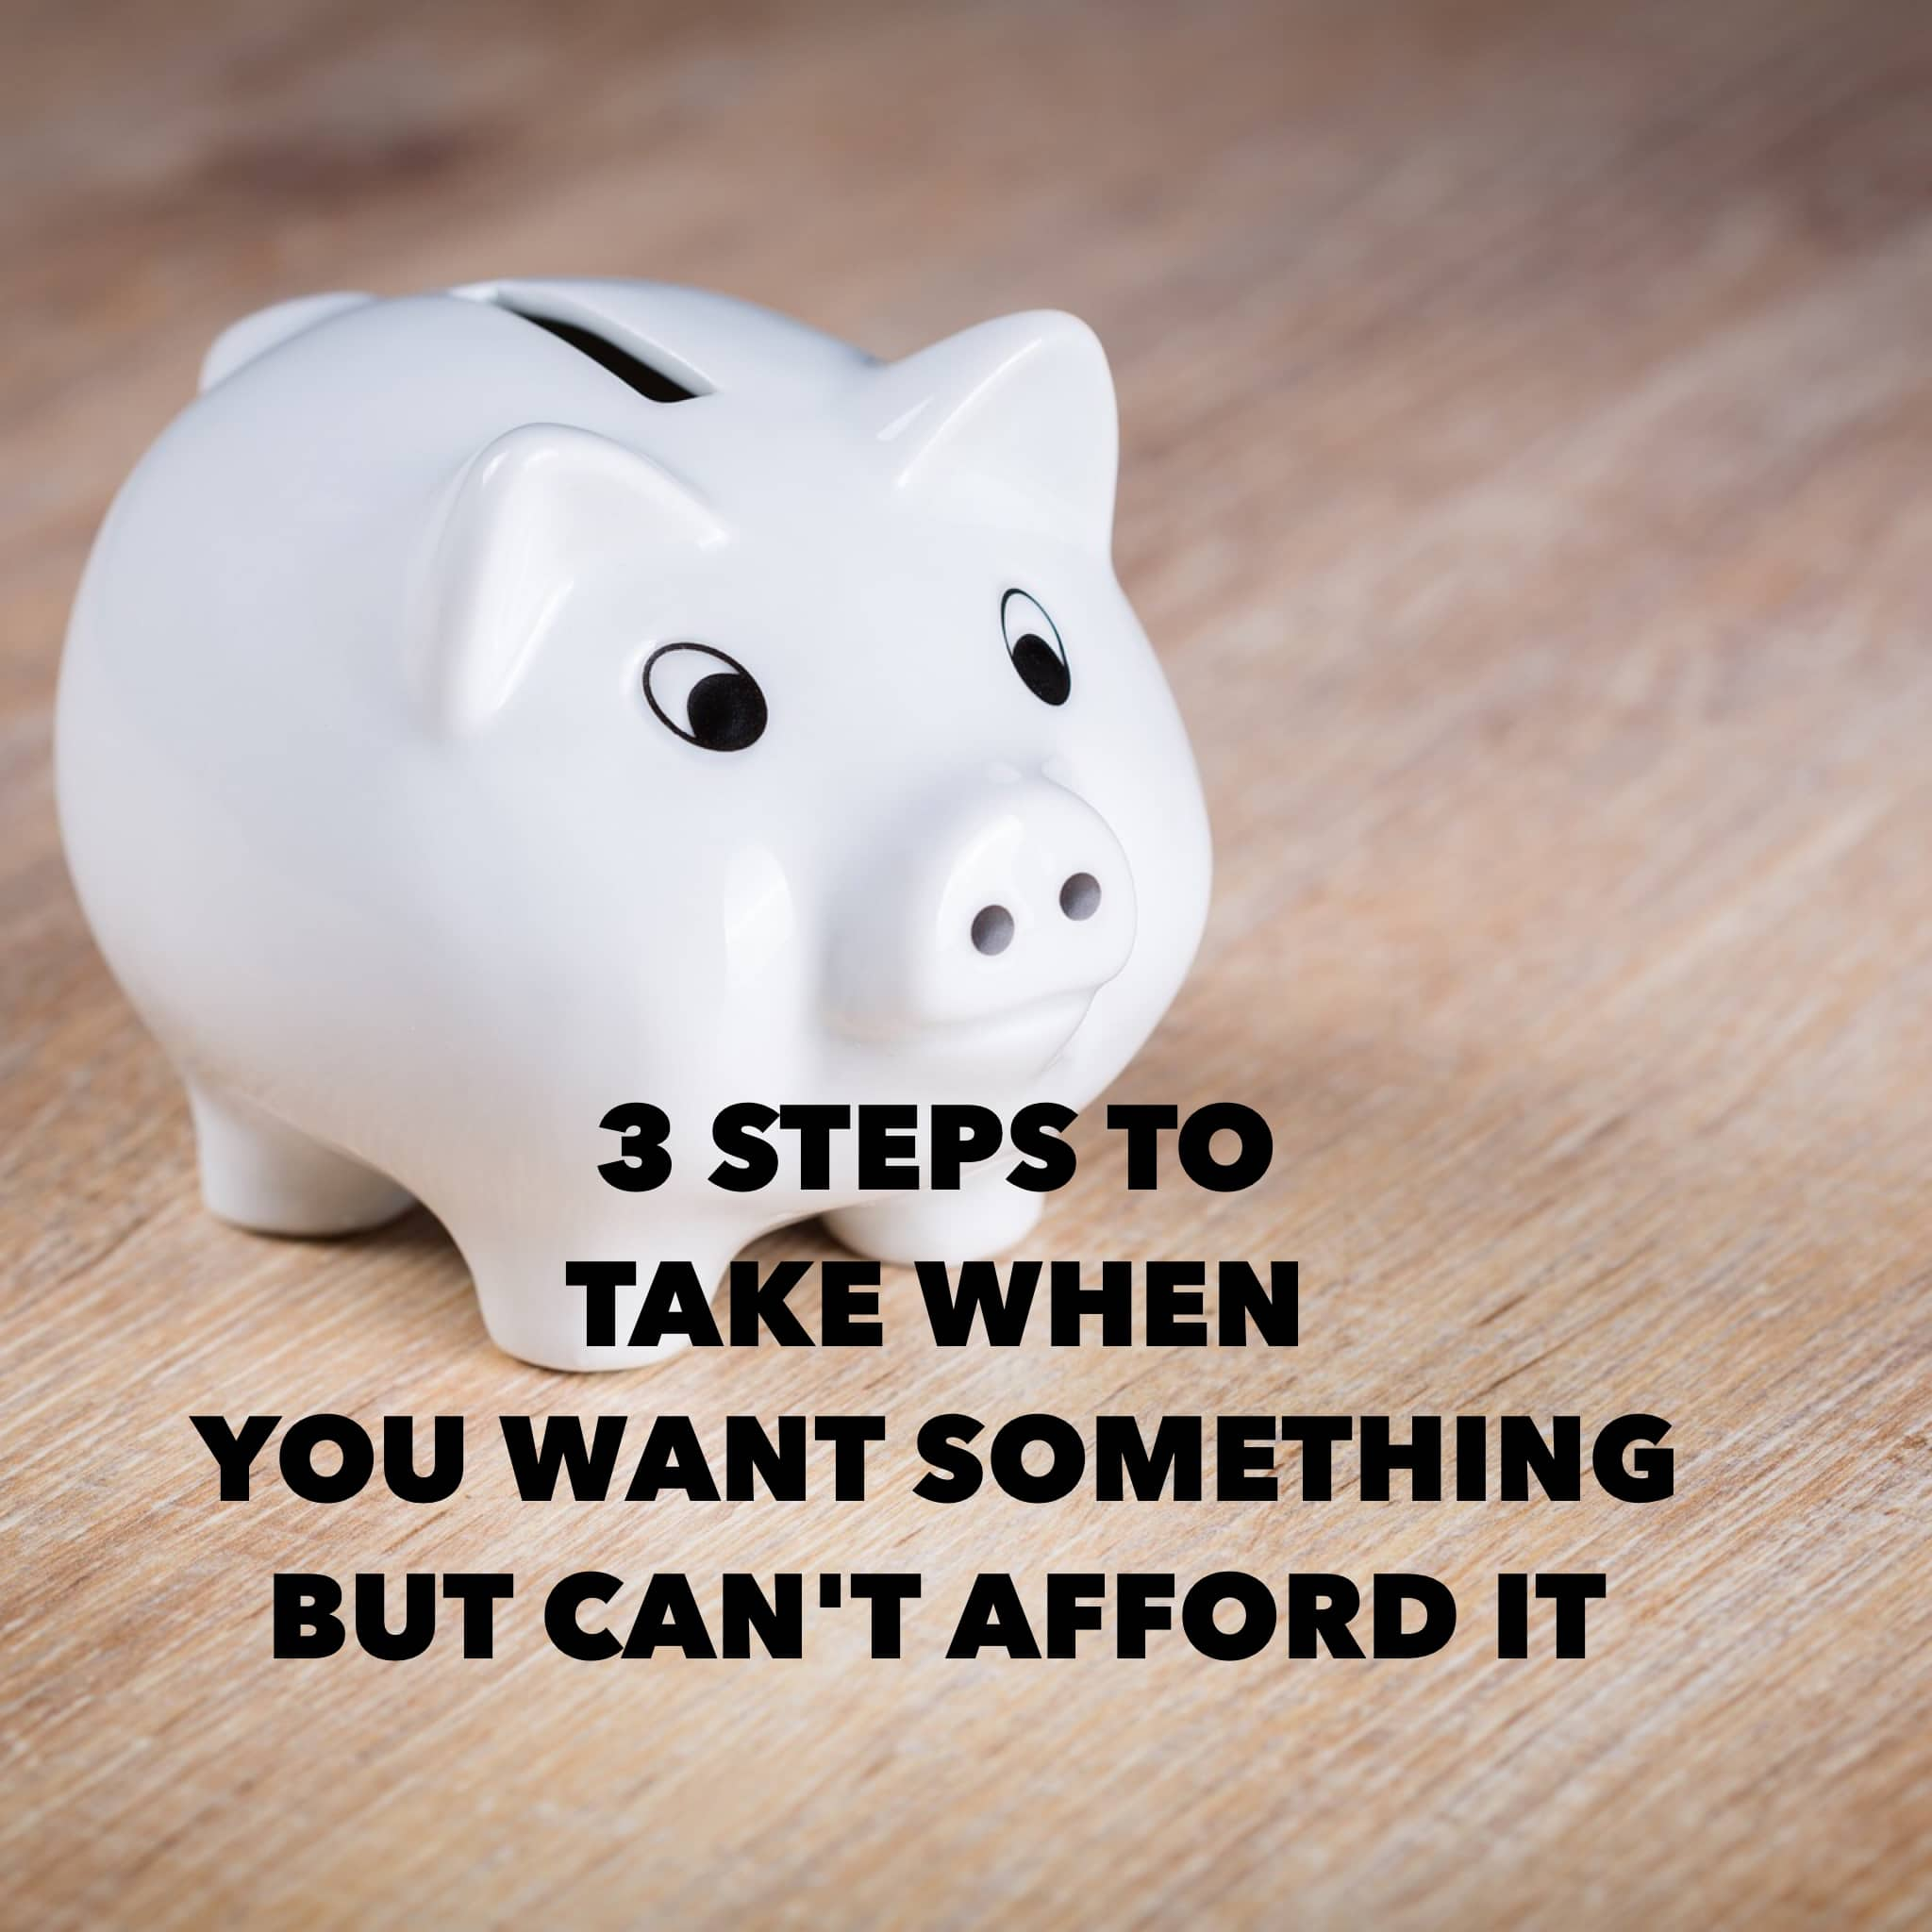 3 steps to take when you want something but can't afford it.